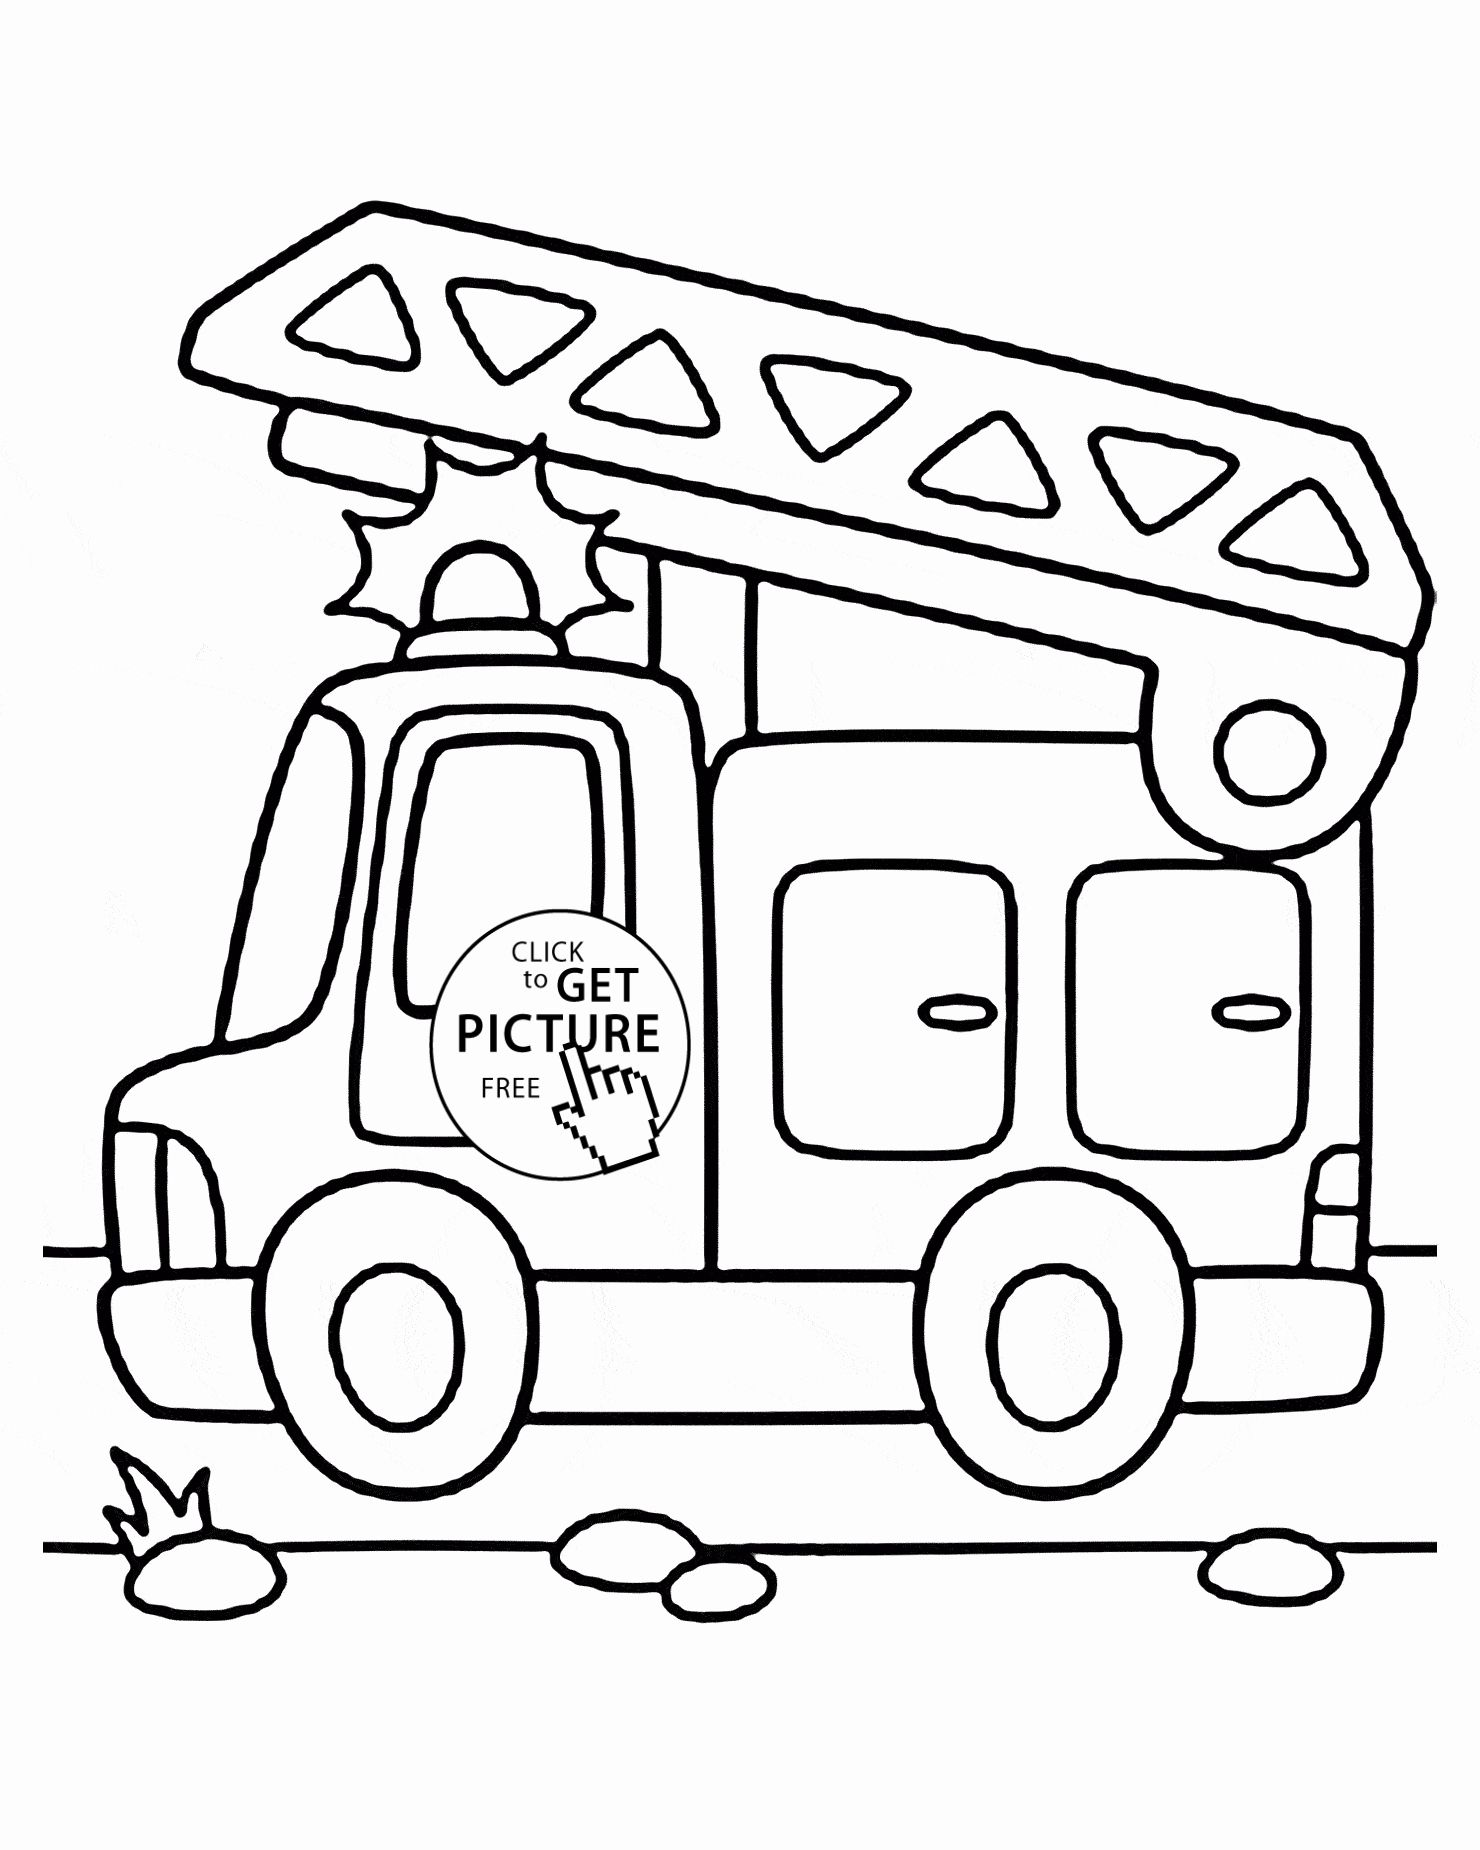 Police Truck Coloring Page Best Of Ambulance Coloring Sheet Page Vehicles Free Pages Firetruck Coloring Page Truck Coloring Pages Monster Truck Coloring Pages